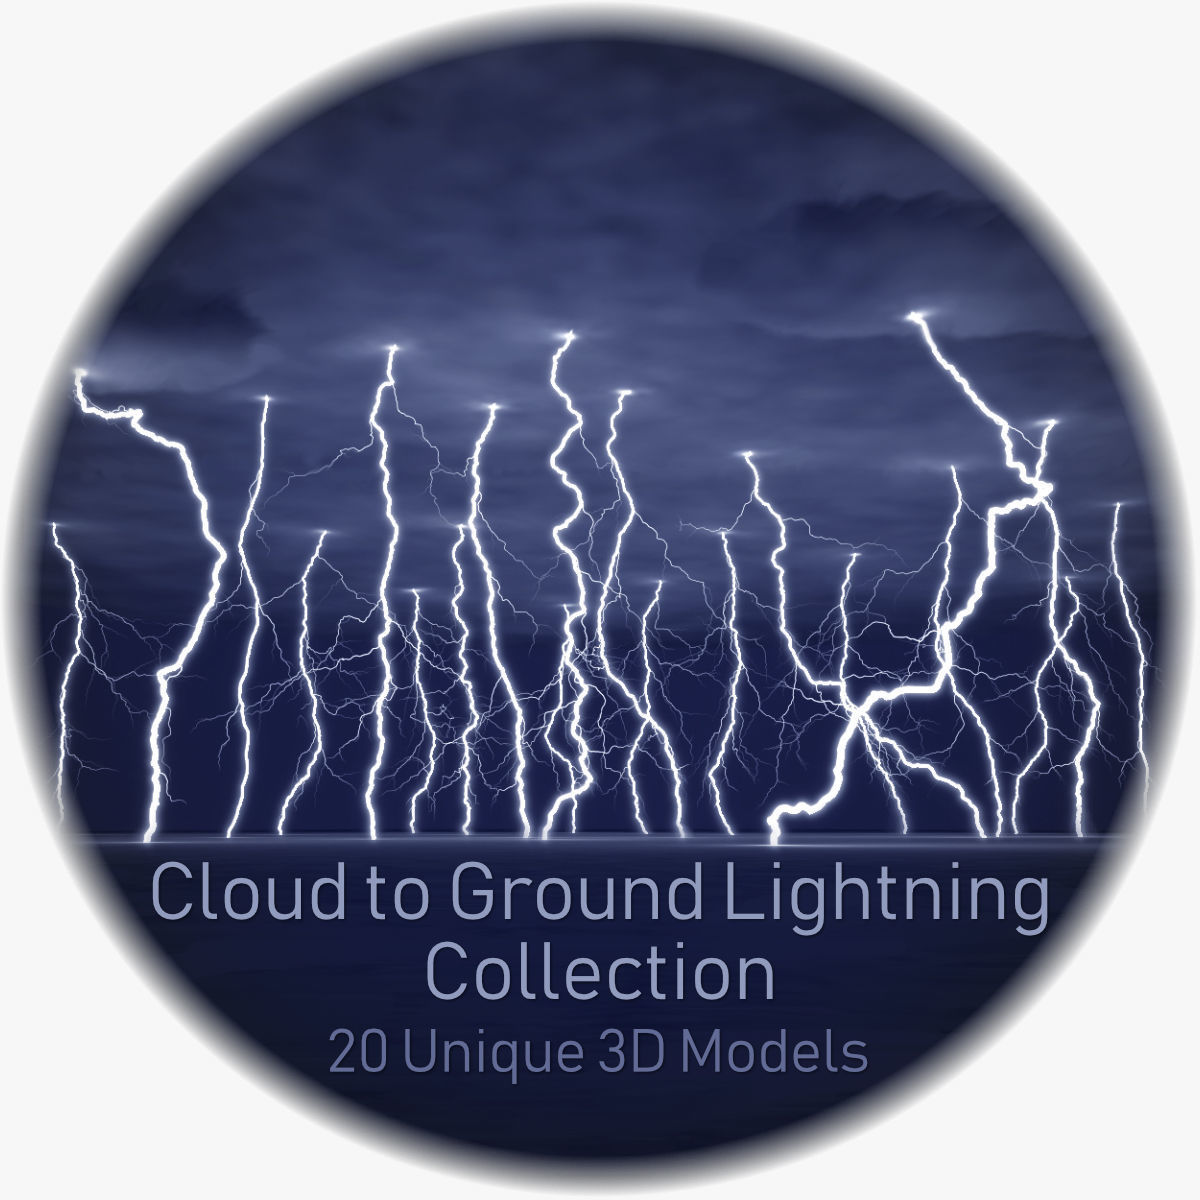 Realistic 3D Lightning Collection CG-01 - 20